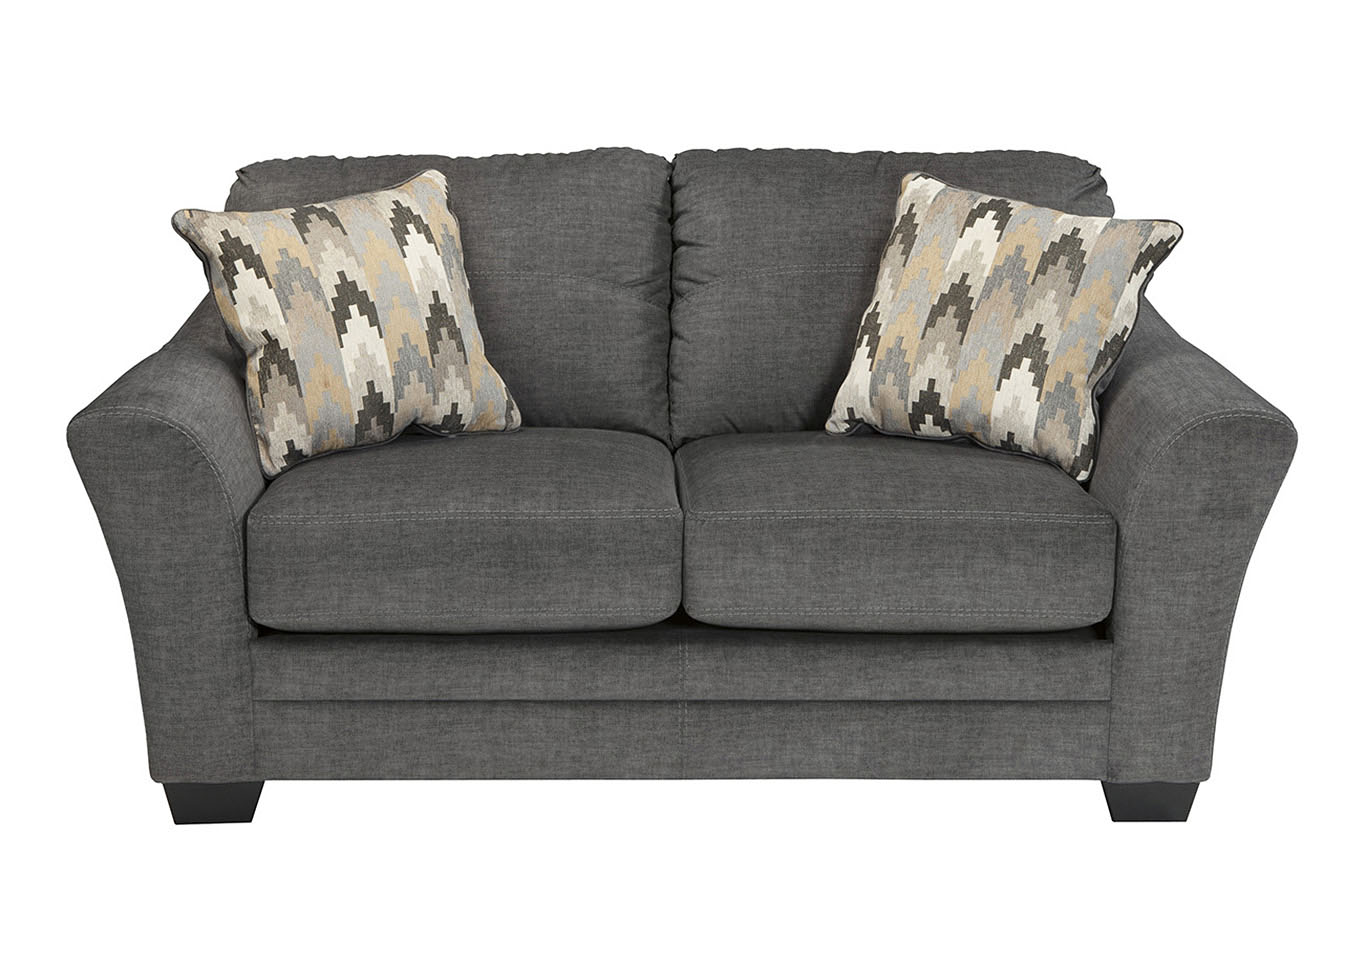 Bay Star Consignments and Home Braxlin Charcoal Loveseat